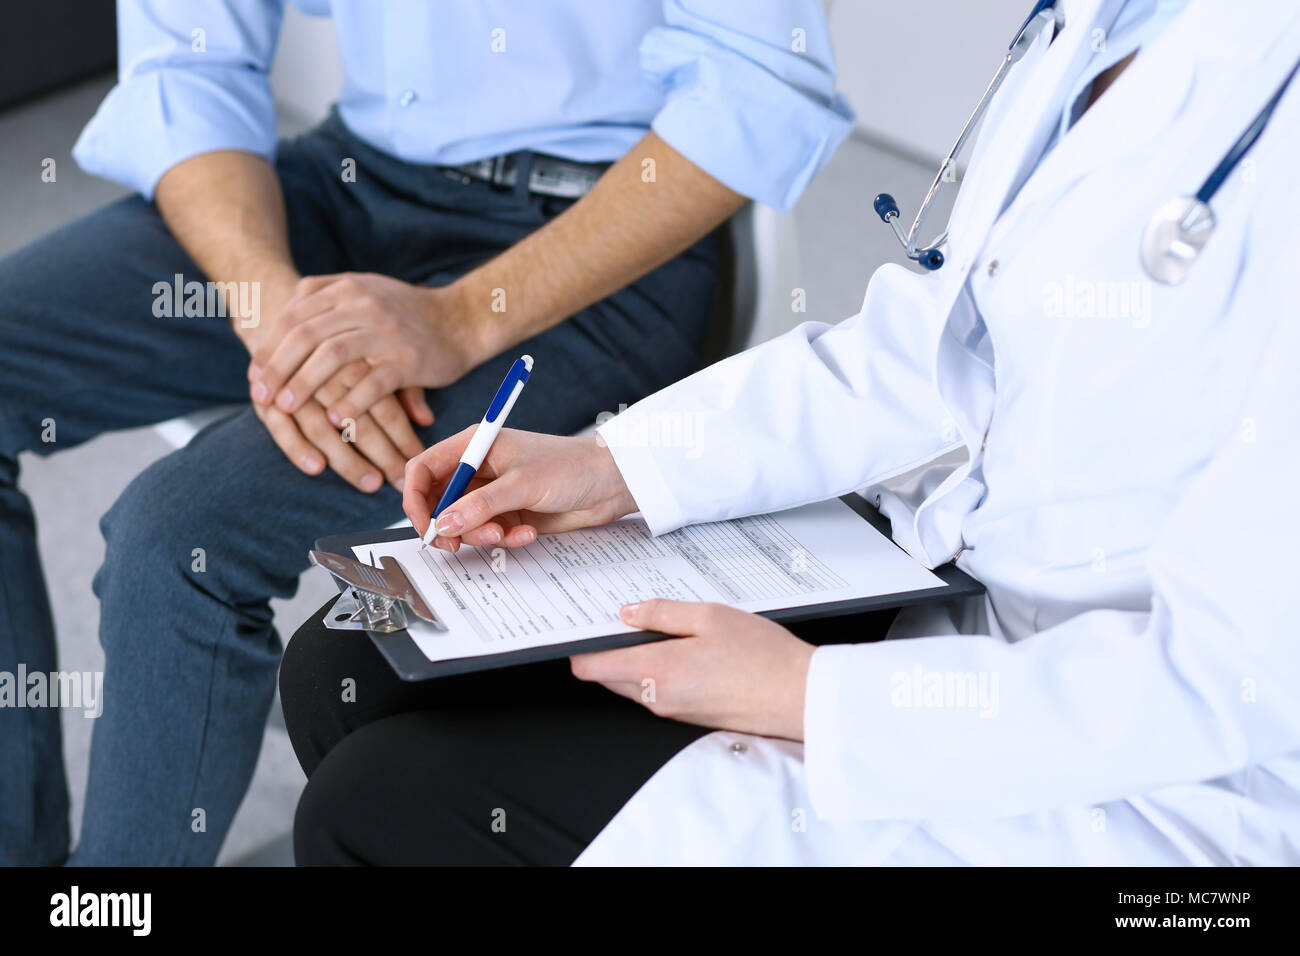 Female doctor holding application form while consulting man patient female doctor holding application form while consulting man patient in hospital medicine and healthcare concept thecheapjerseys Choice Image